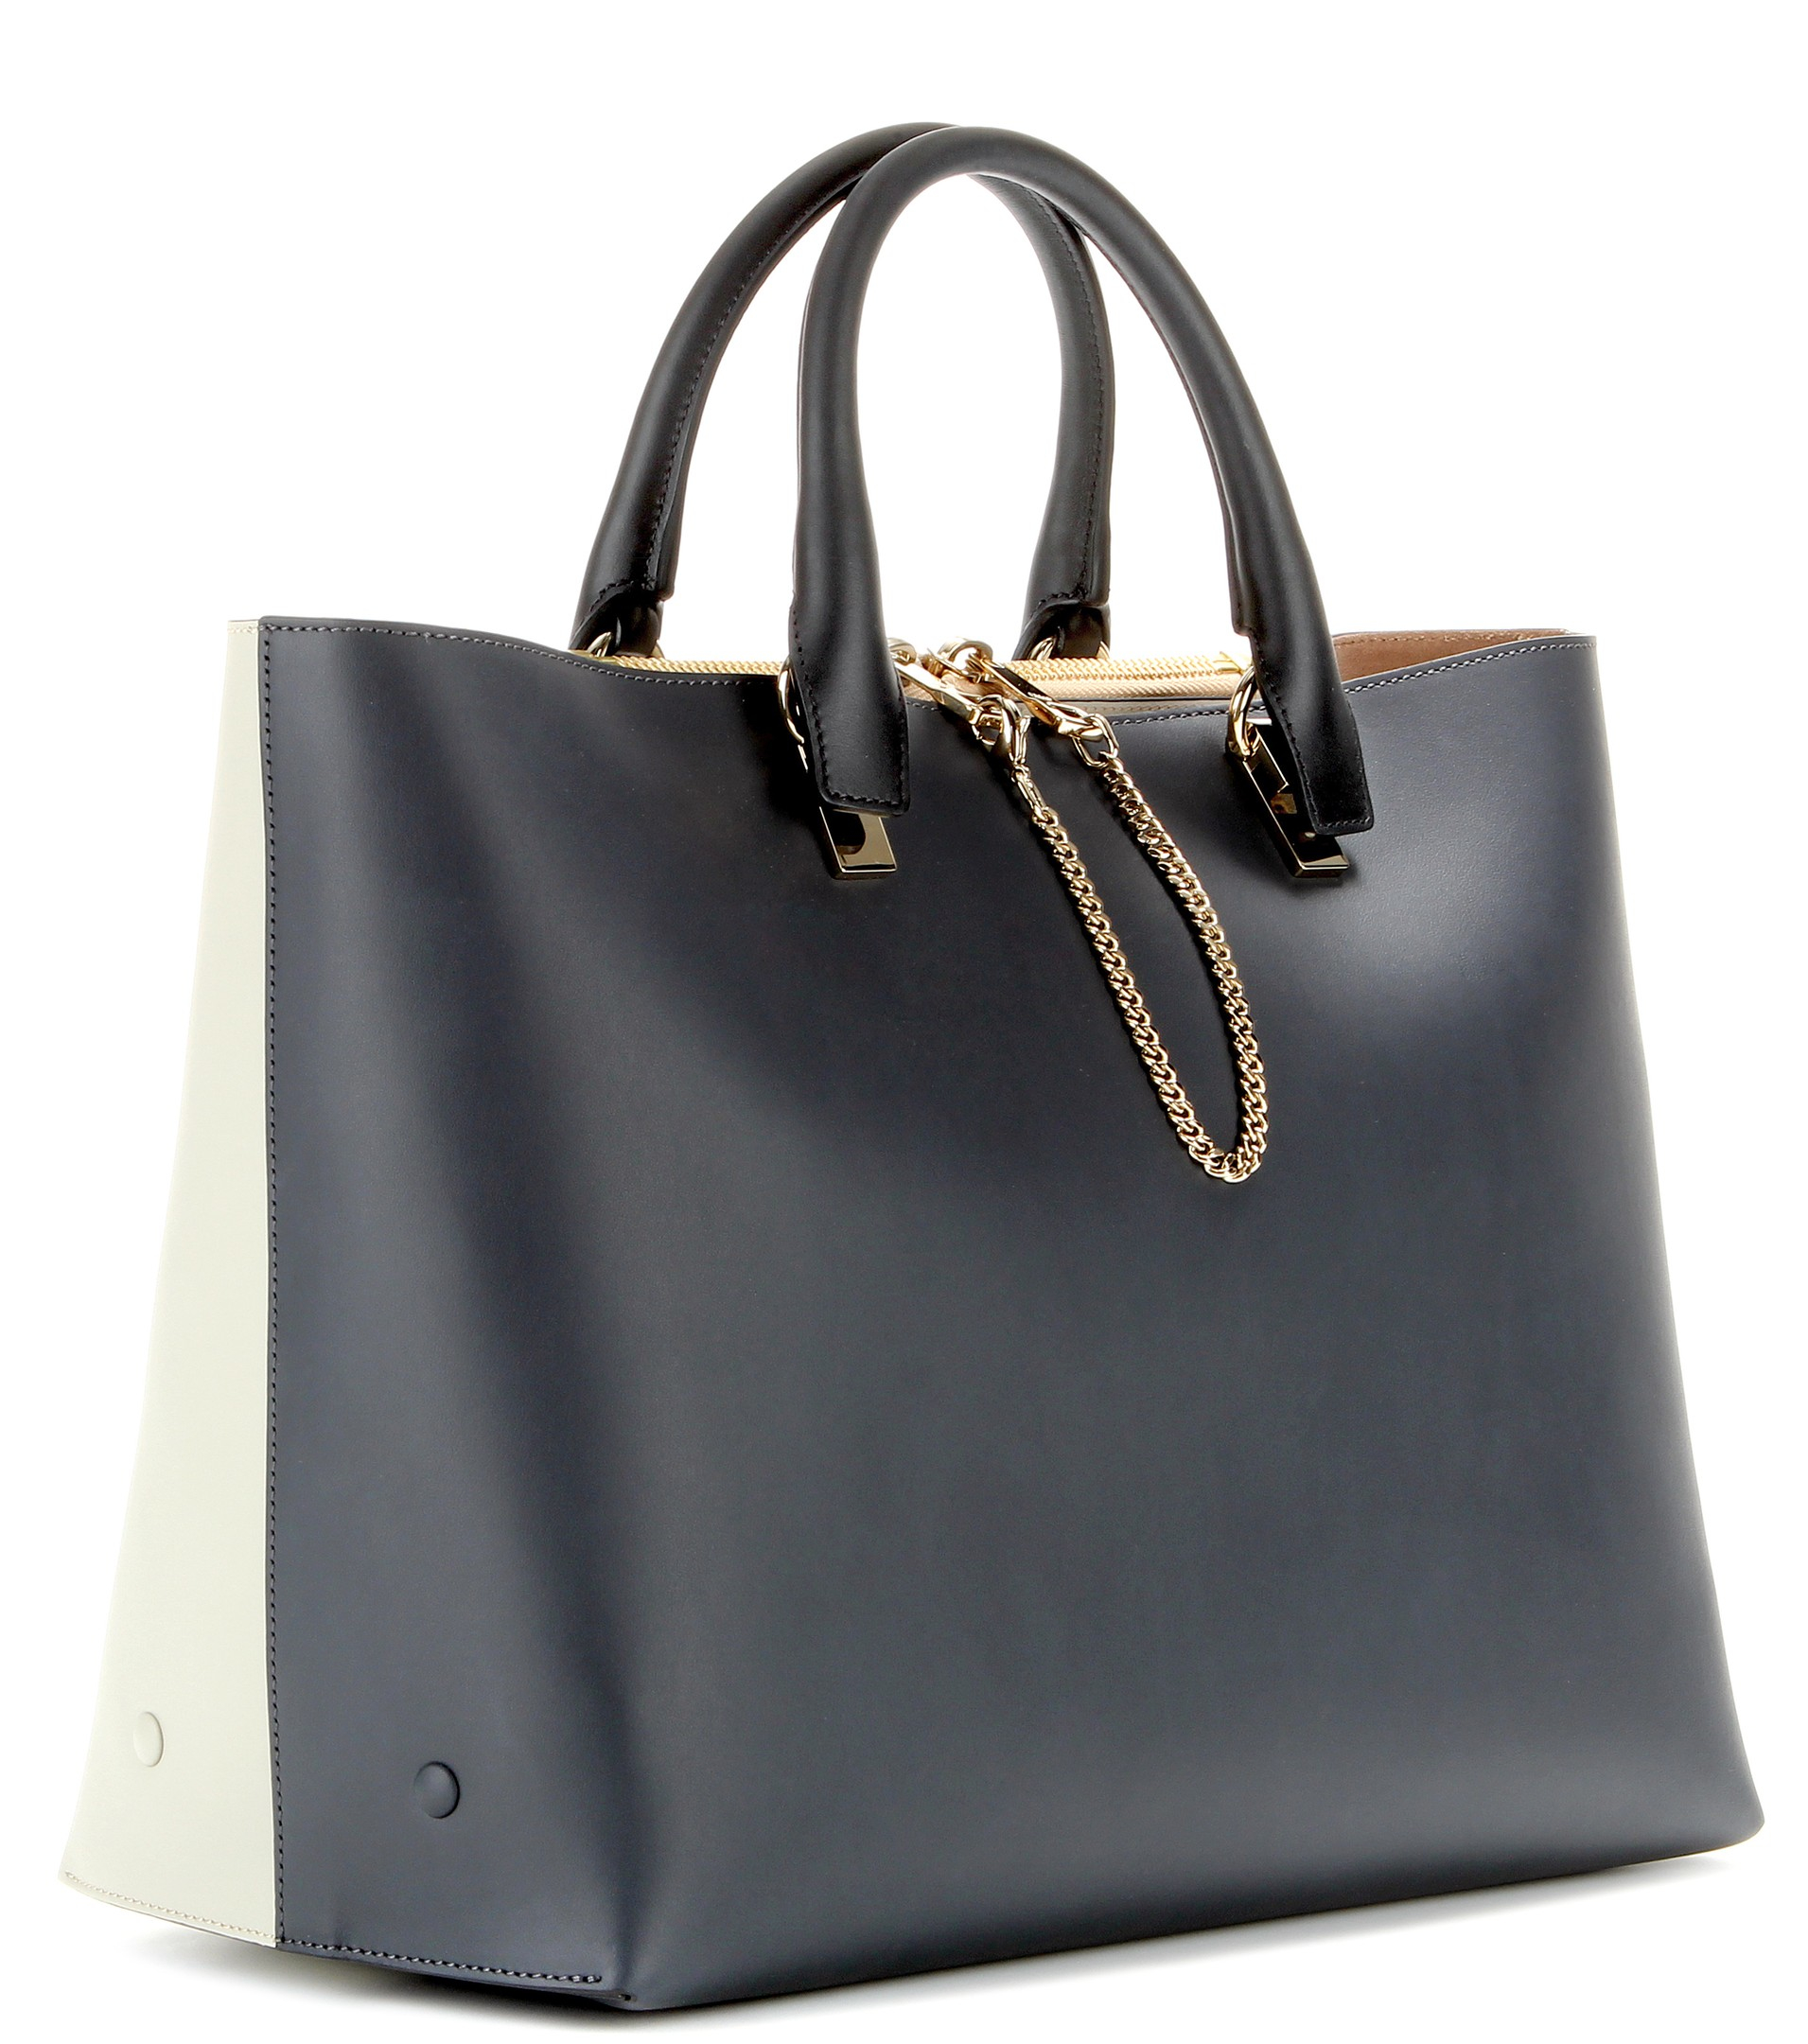 Chlo¨¦ Baylee Medium Two-tone Leather Tote in Black (Marshmallow ...